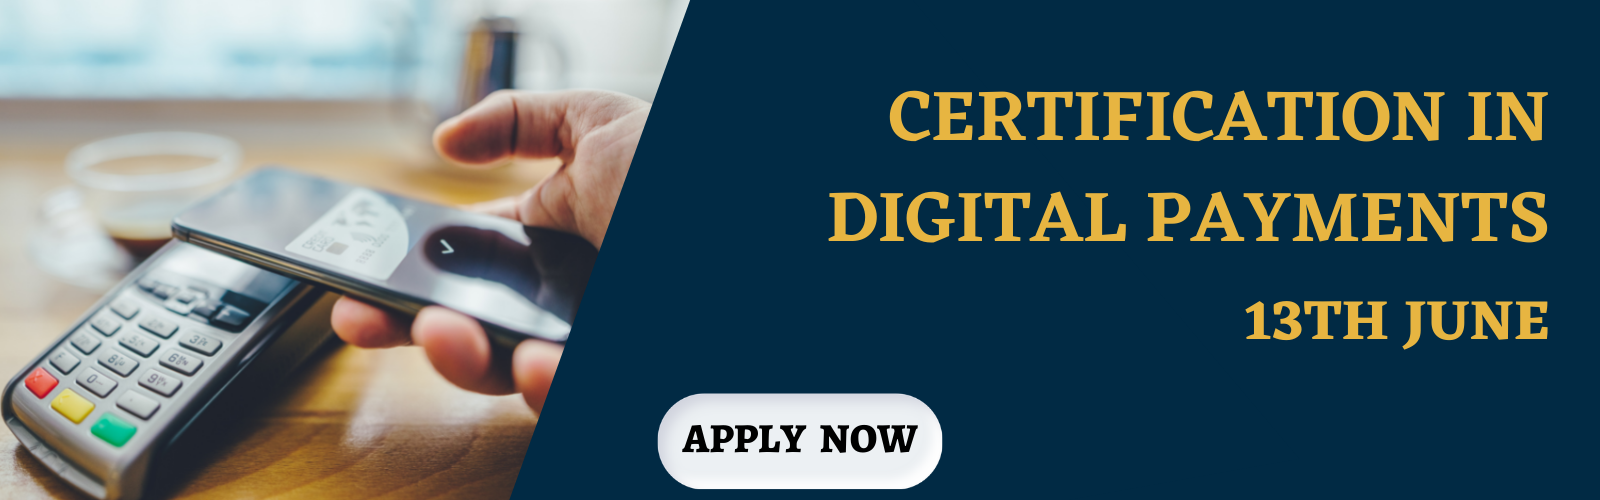 DIGITAL PAYMENTS CERTIFICATION